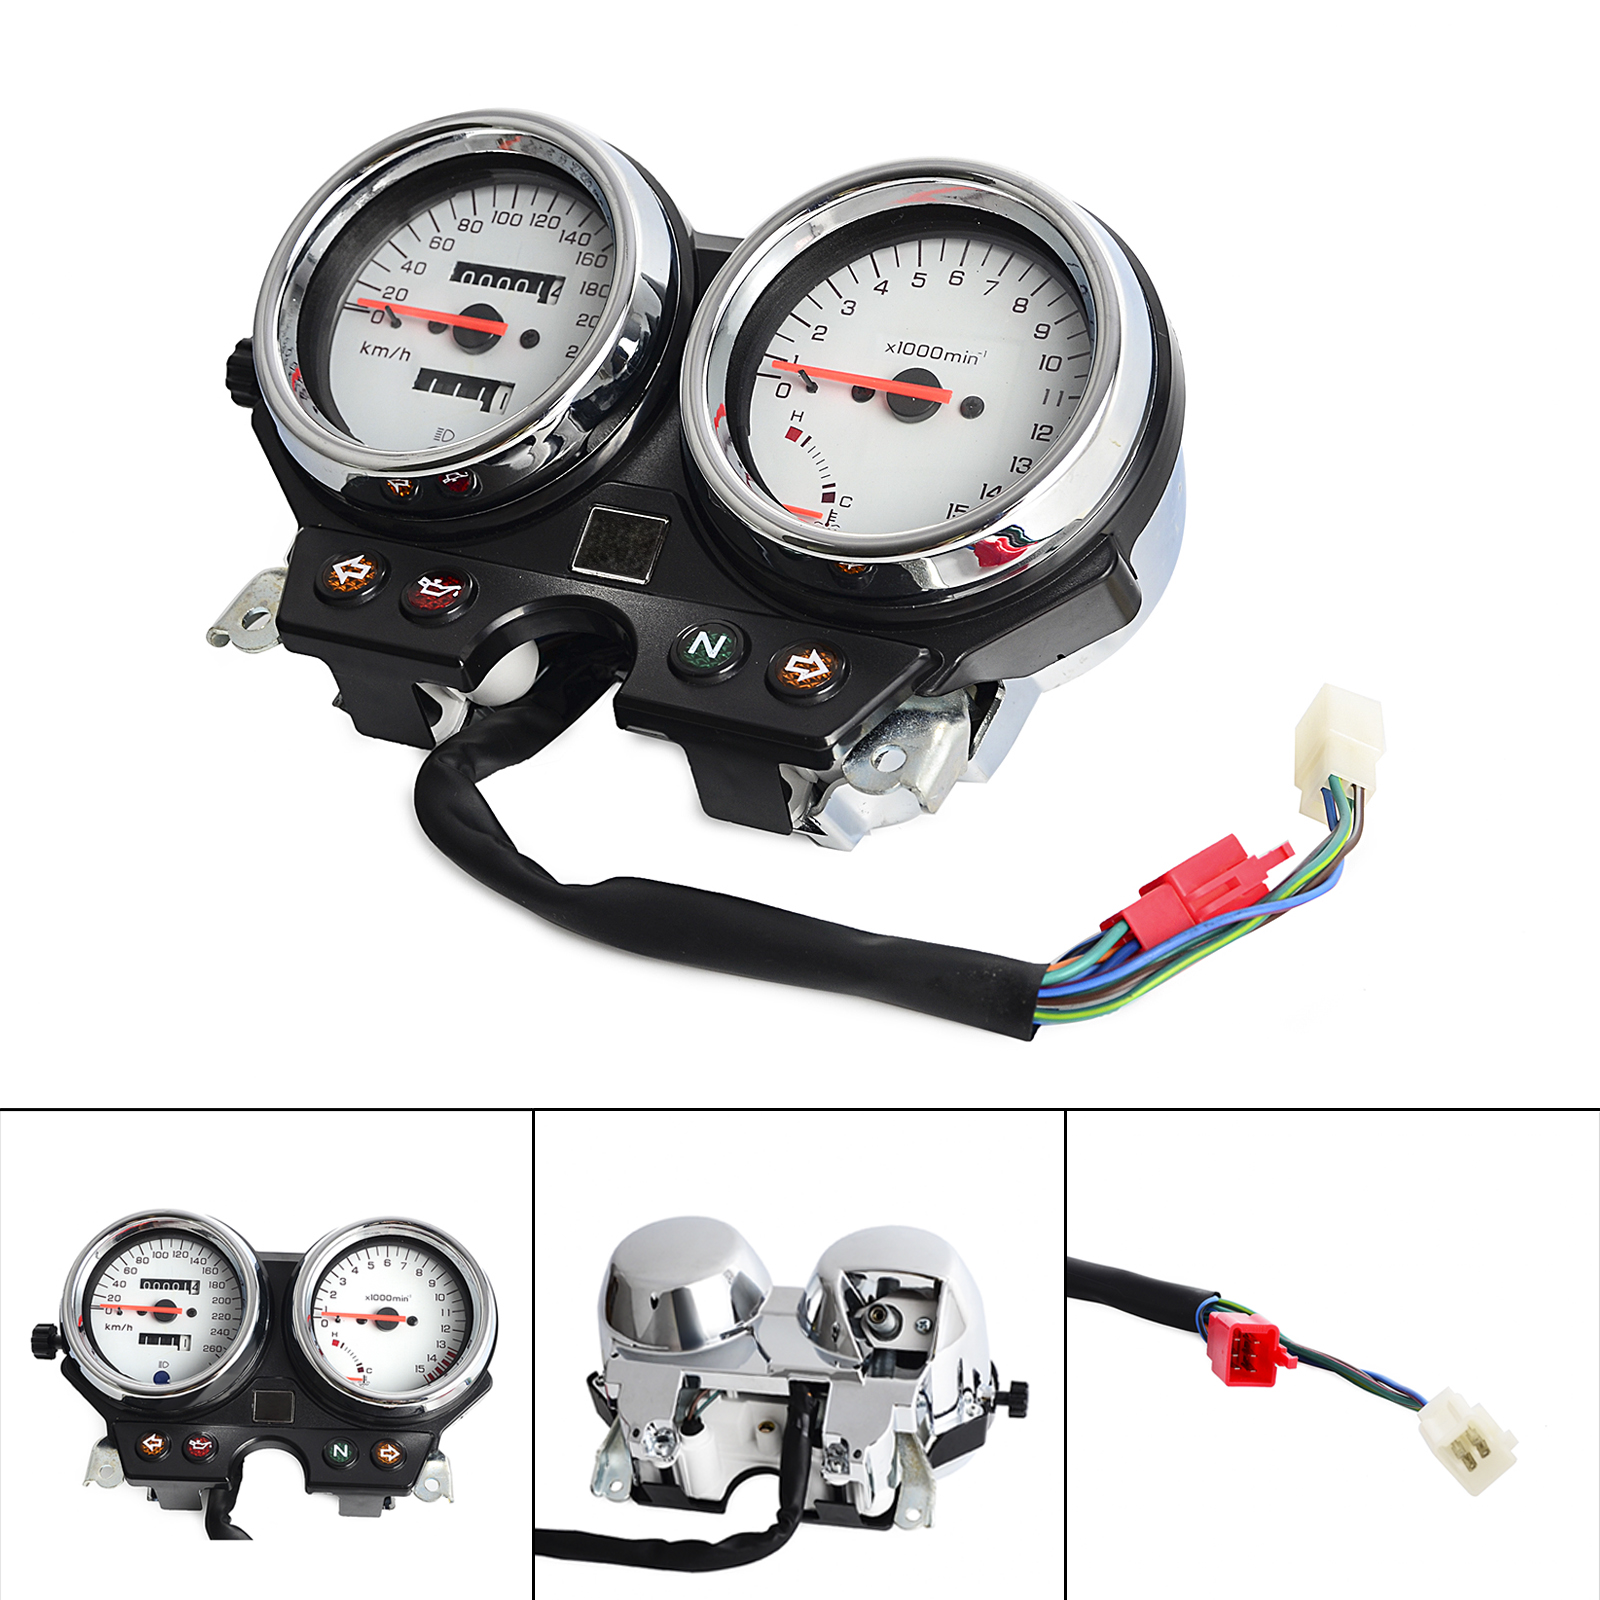 Motorcycle Gauges Cluster Speedometer For Honda CB600 Hornet 600 1996 - 2002 1997 1998 1999 2000 2001 Hornet600 NEW